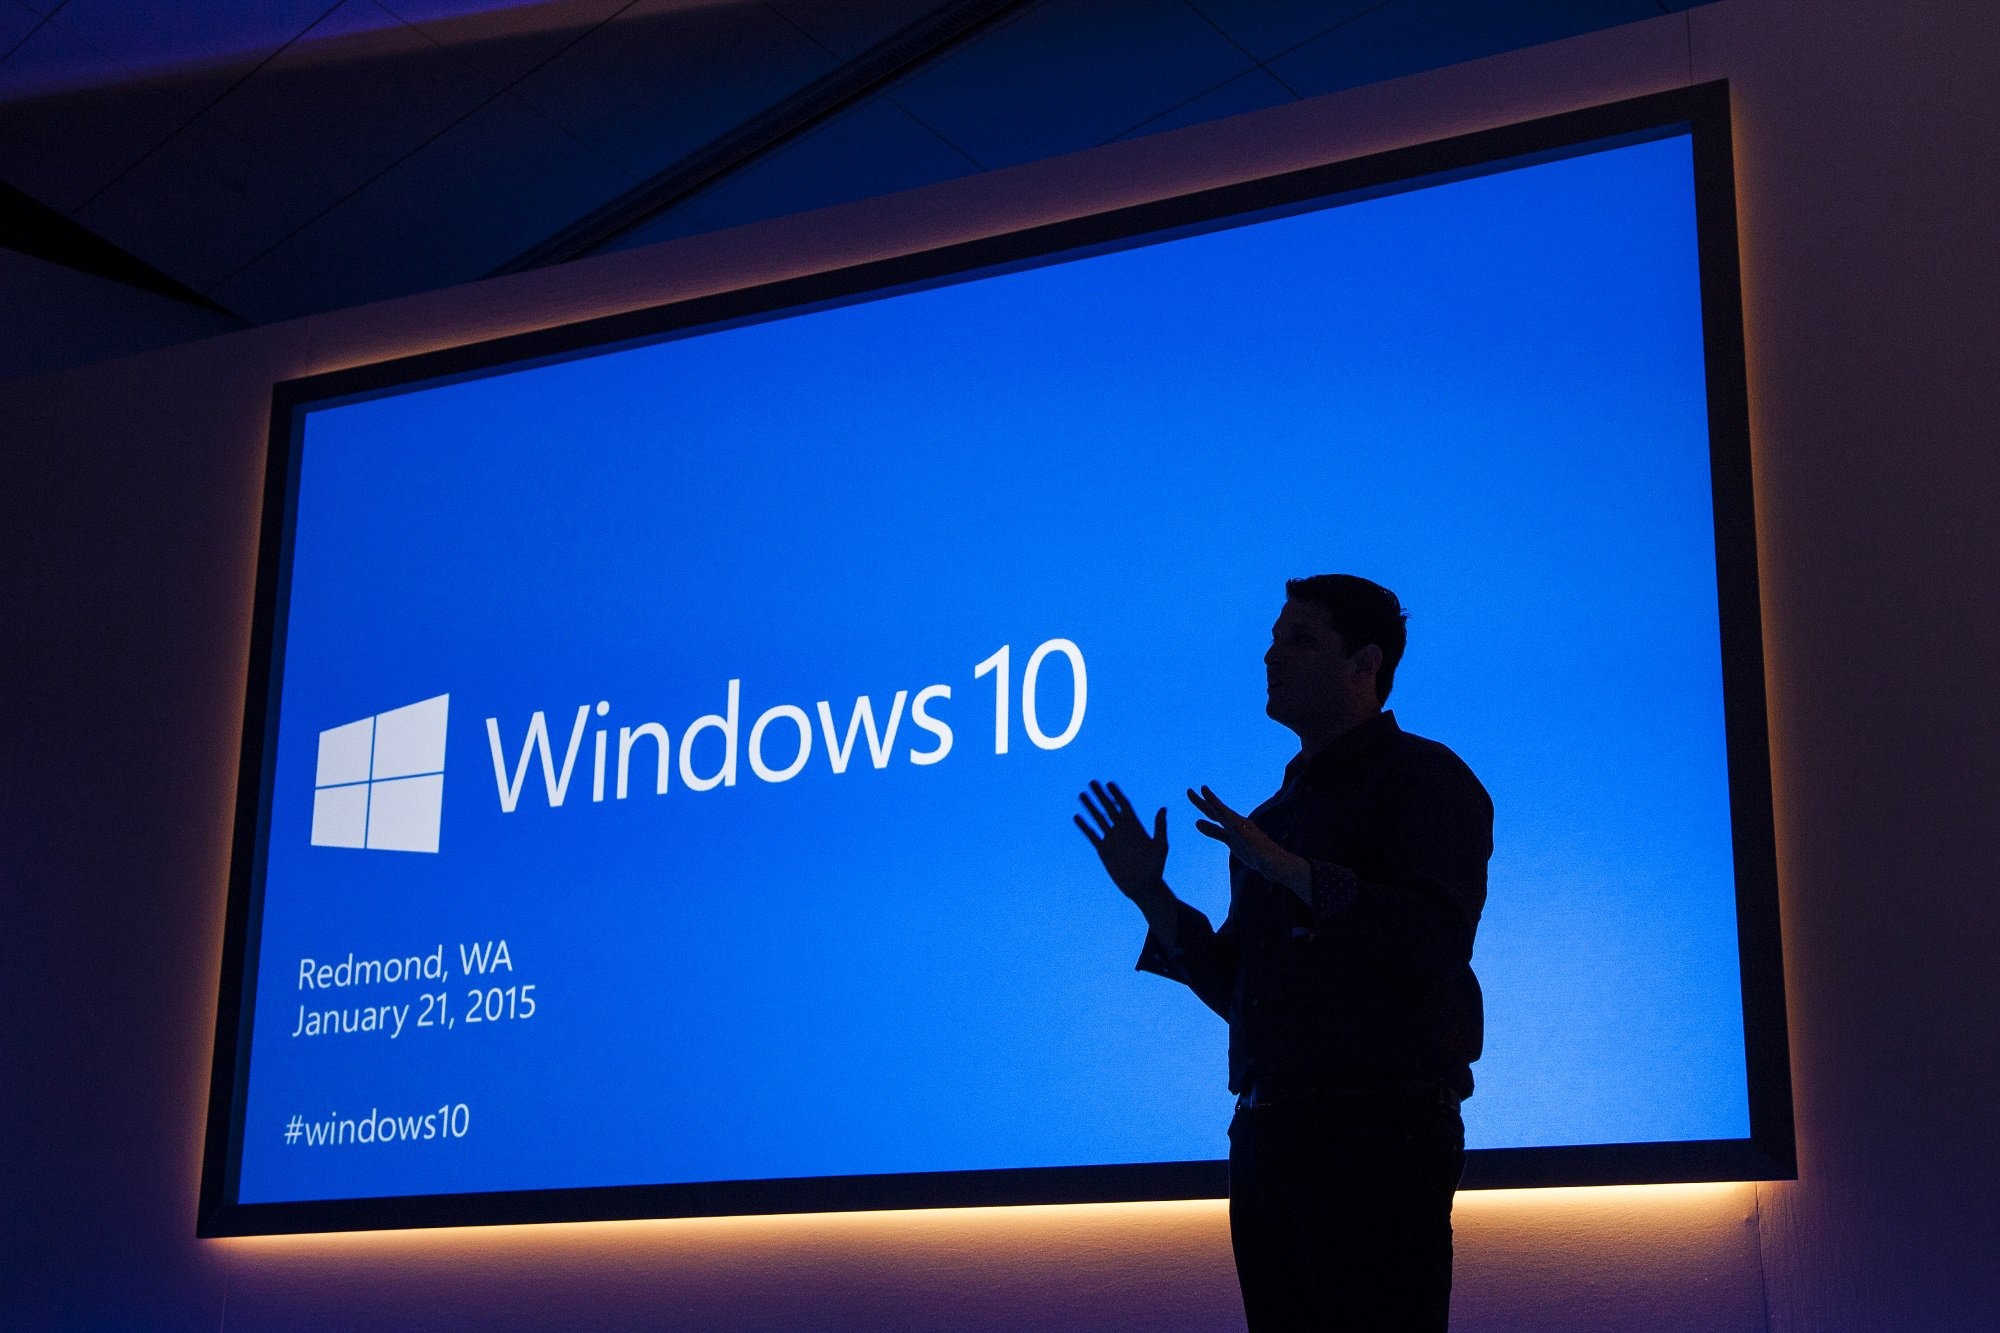 Windows 10 no inicia - solución